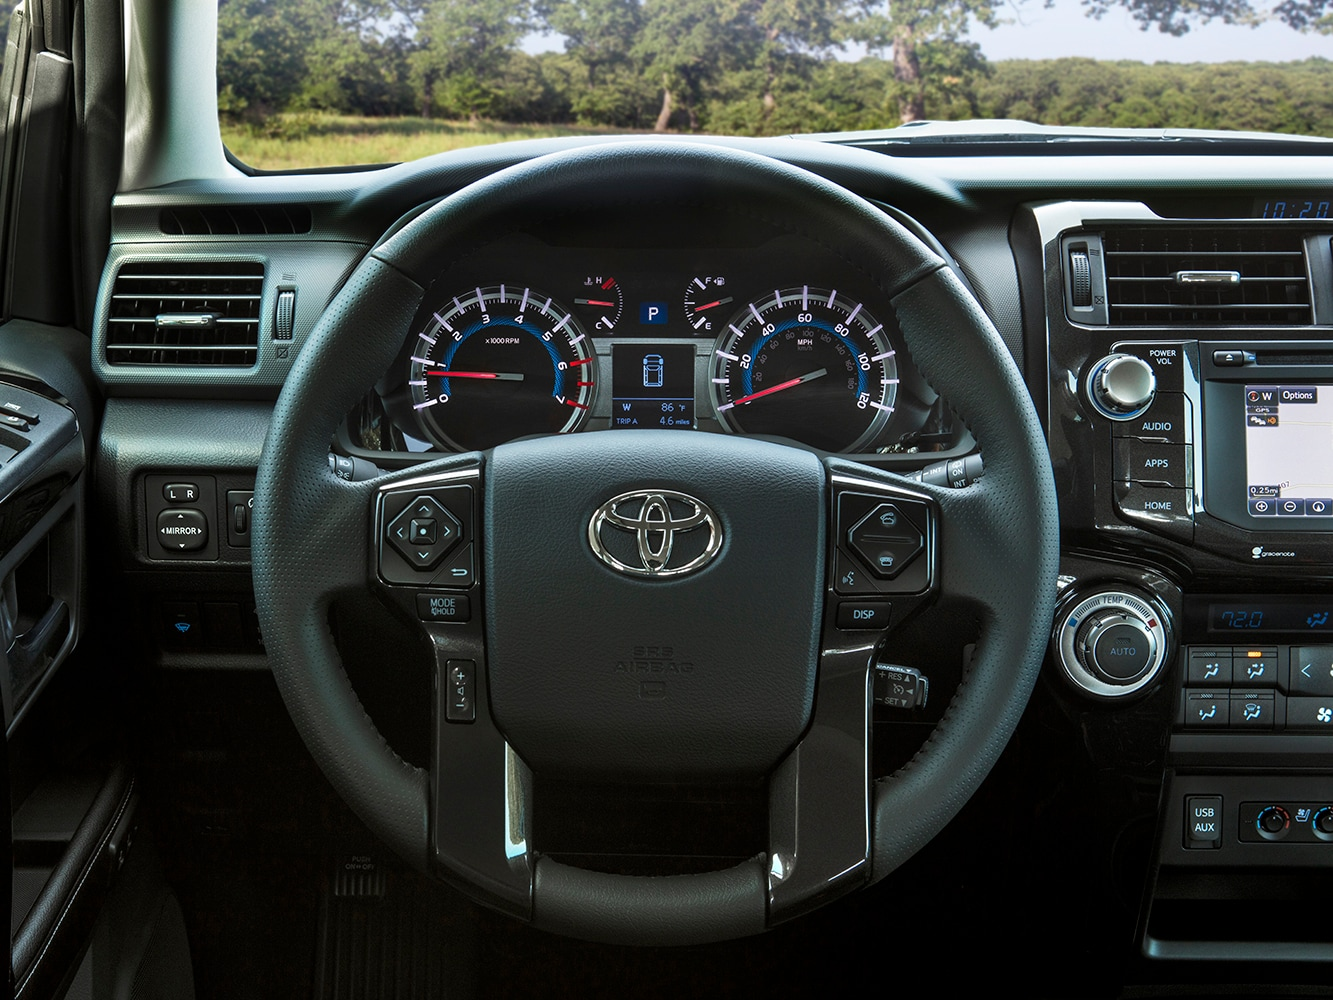 drivers cabin view of the 2019 4Runner